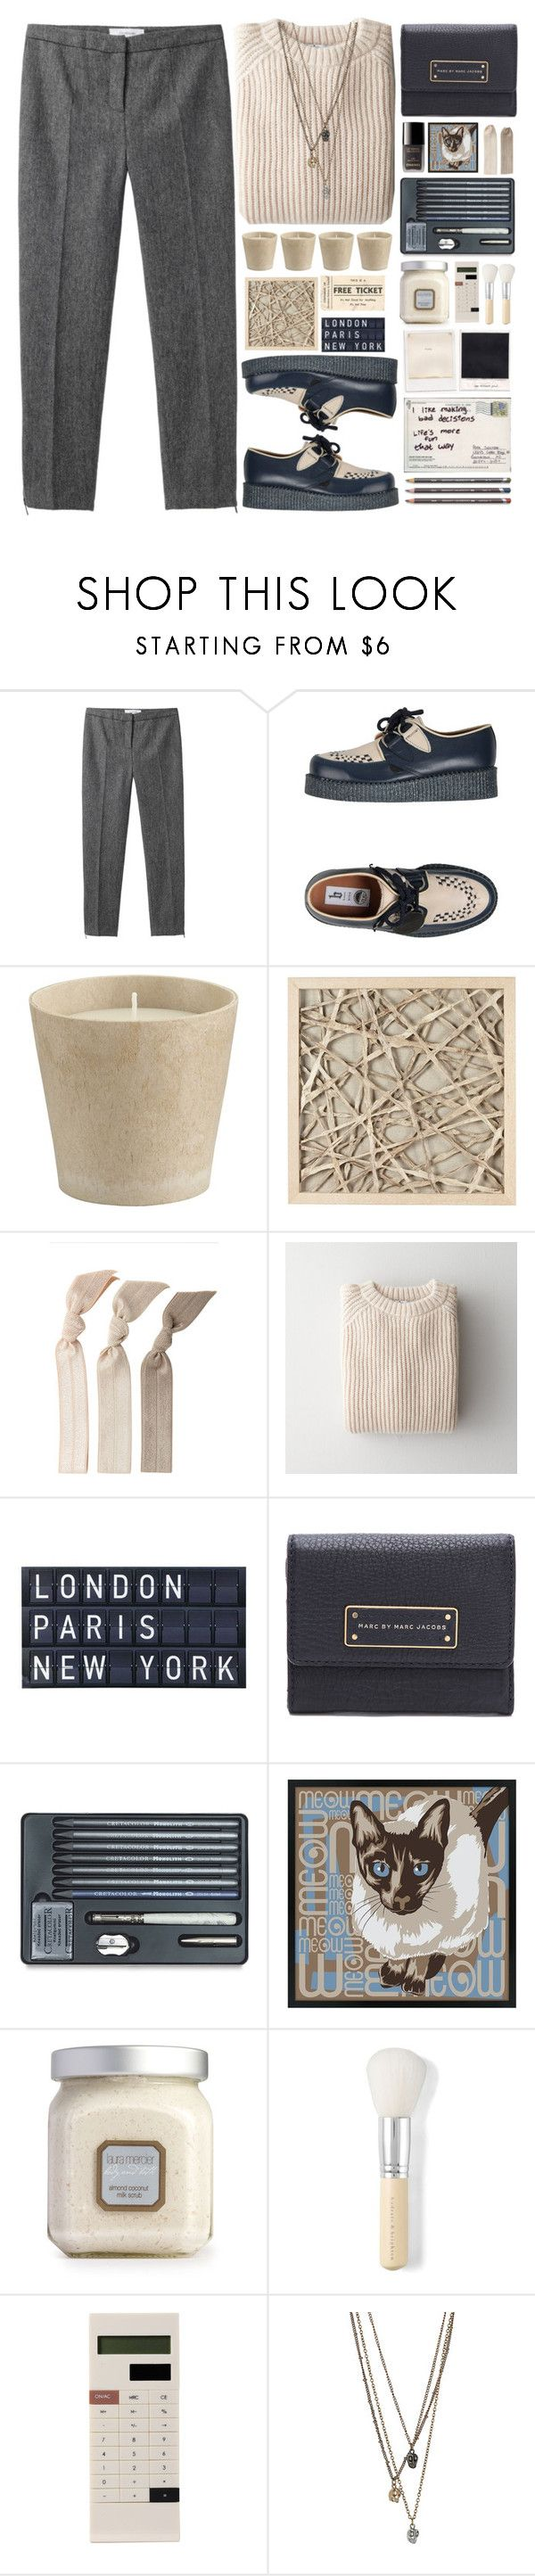 """""""Spare change"""" by nobodyspecial-218 ❤ liked on Polyvore featuring Grey Line By Hussein Chalayan, Underground, Crate and Barrel, WALL, Emi-Jay, Babe, Tela Beauty Organics, Marc by Marc Jacobs, Chanel and Universal Lighting and Decor"""